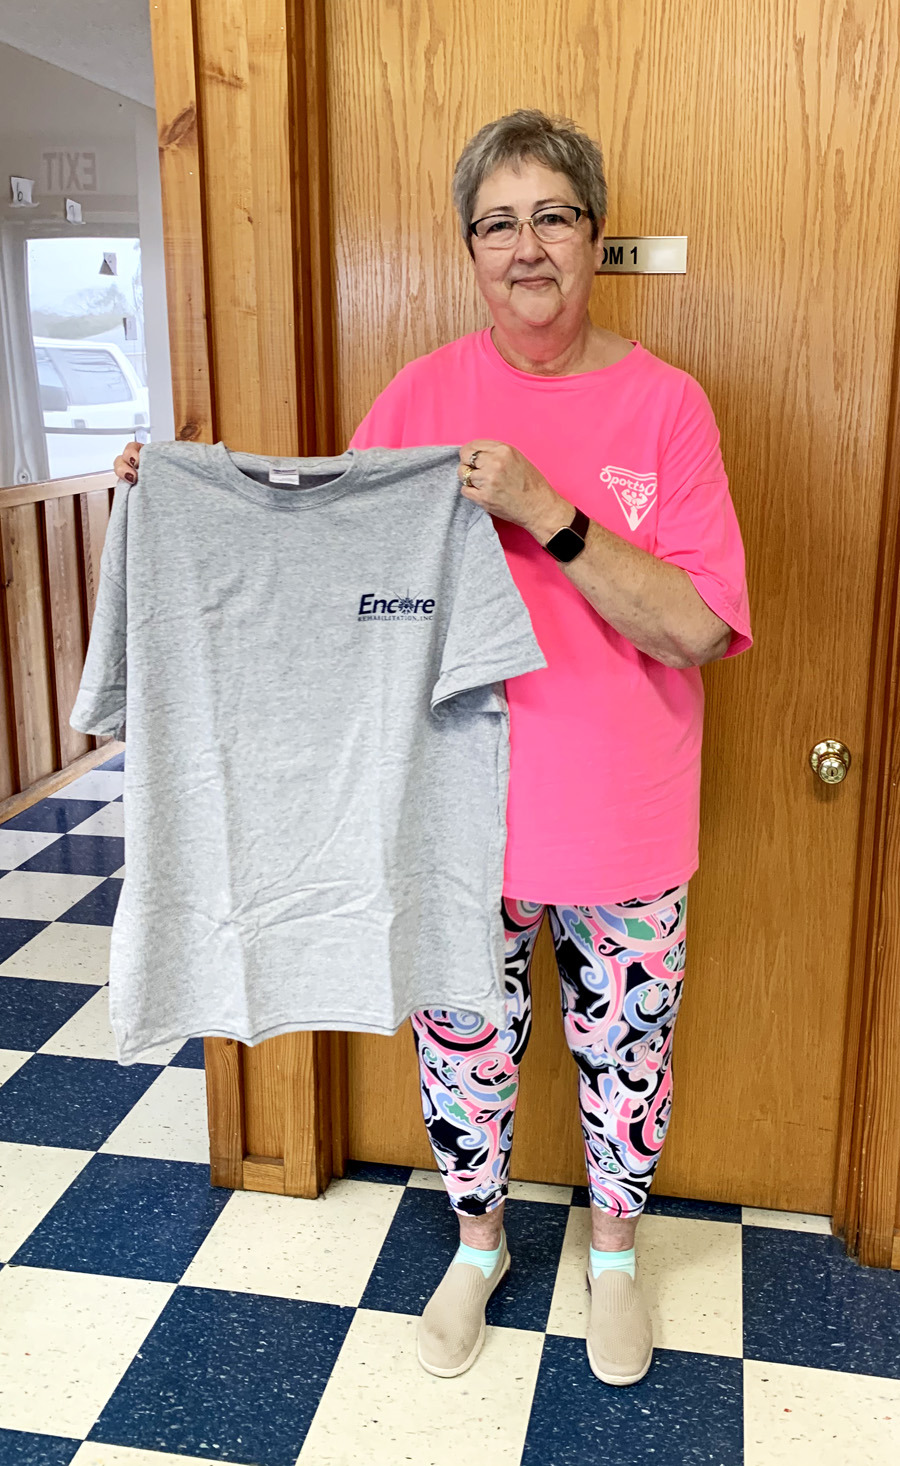 SportsFit Member of the Month Brenda Snell #weLOVEtoseeyoumove